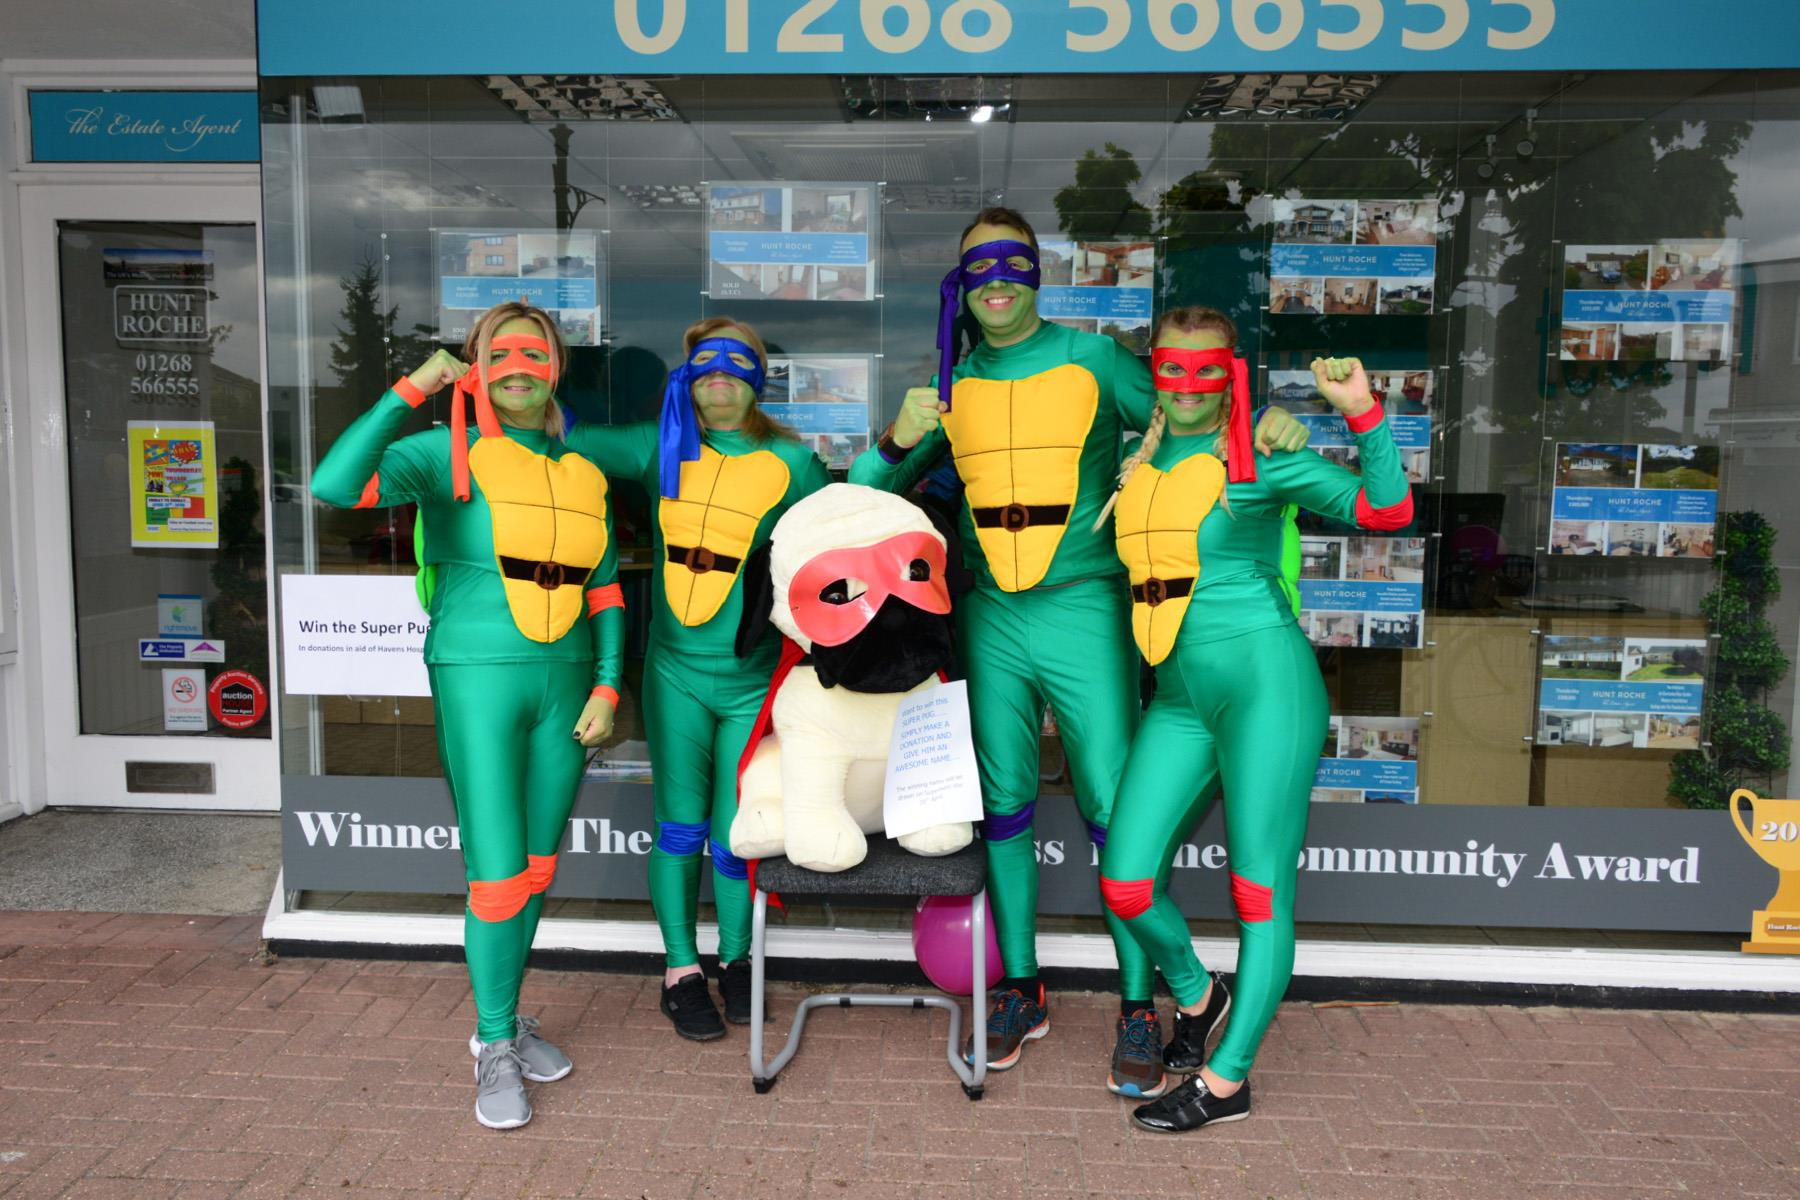 Hunt Roche looking 'Super' for charity